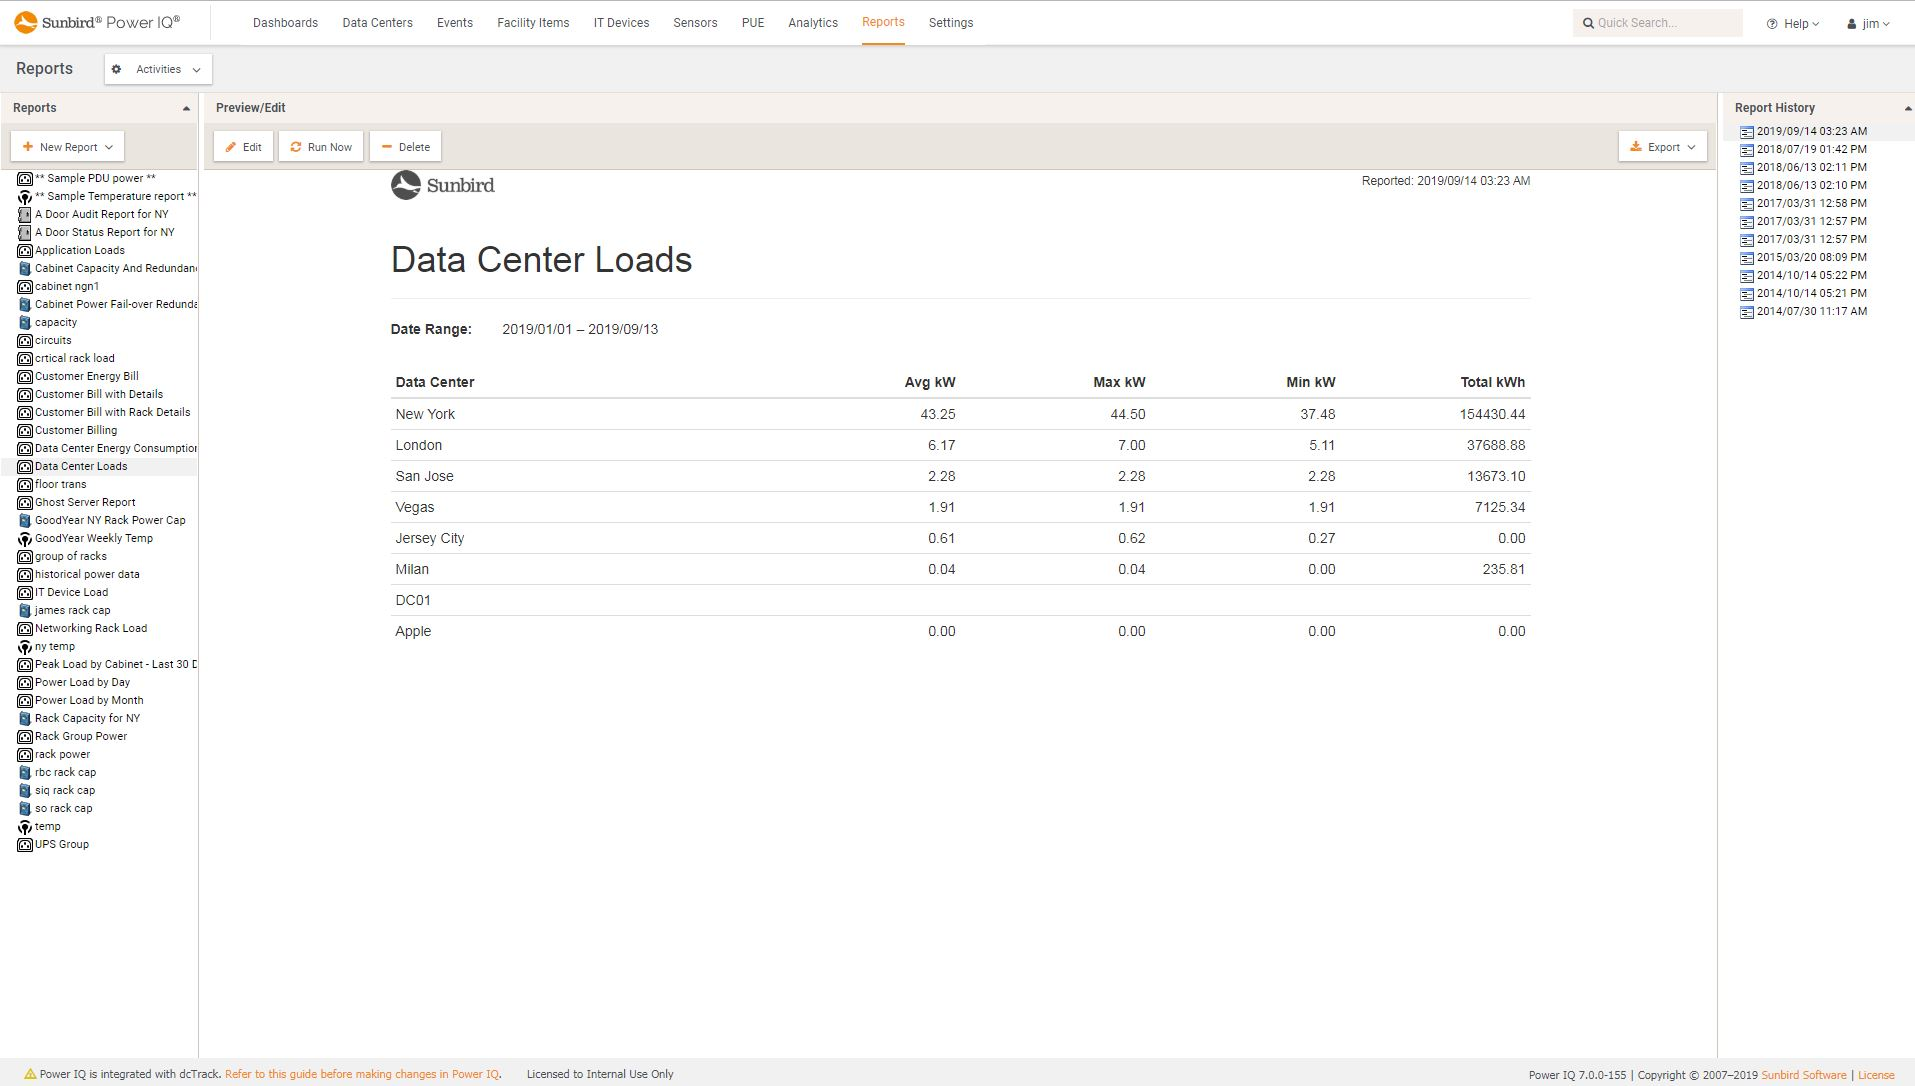 Screenshot of Data Center Energy and Loads